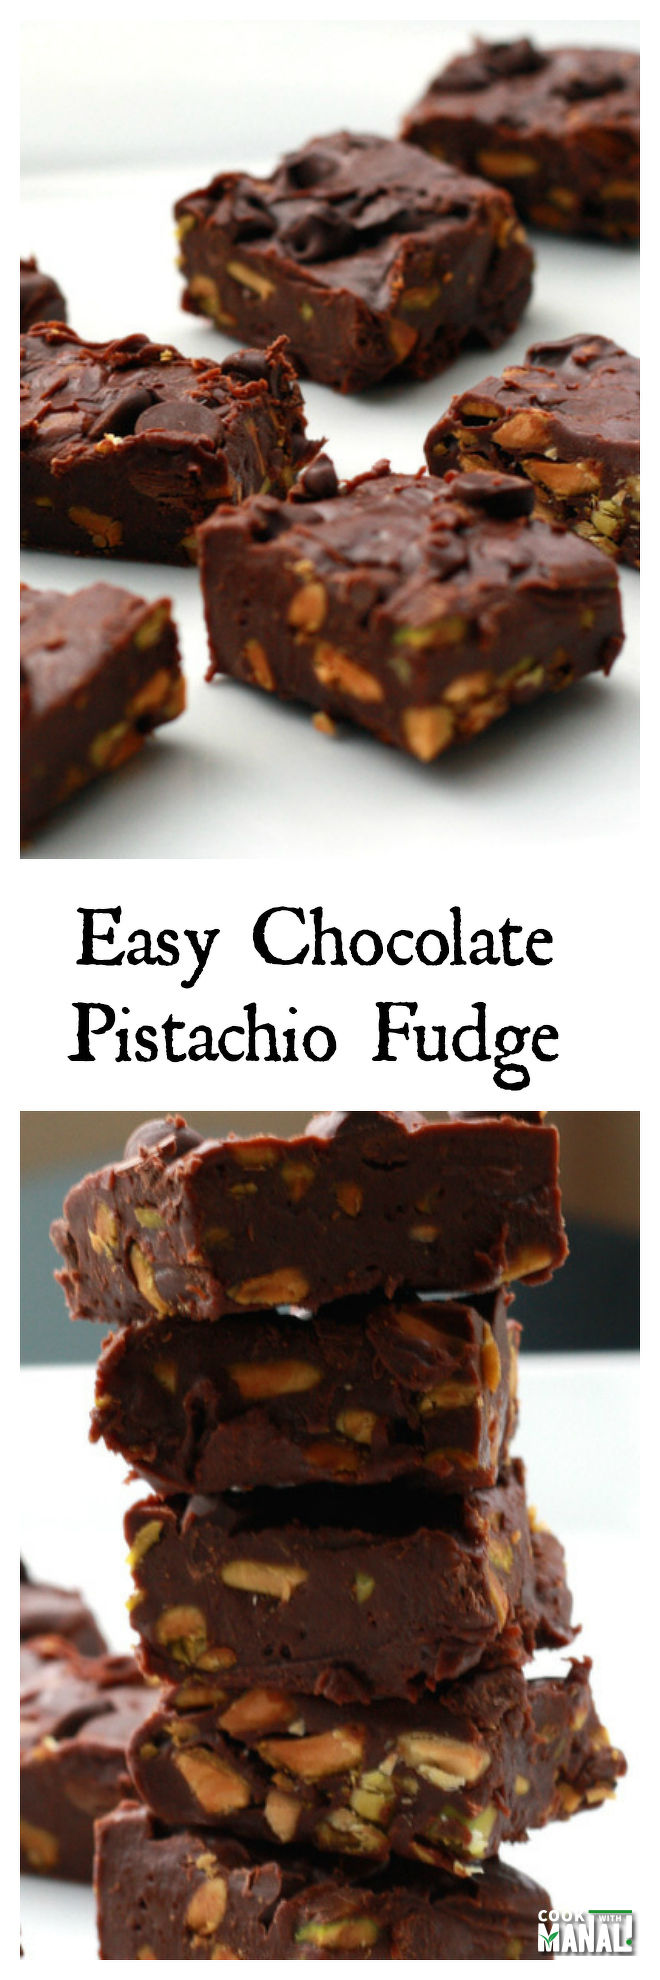 chocolate mint pistachio fudge chocolate marshmallow fudge chocolate ...